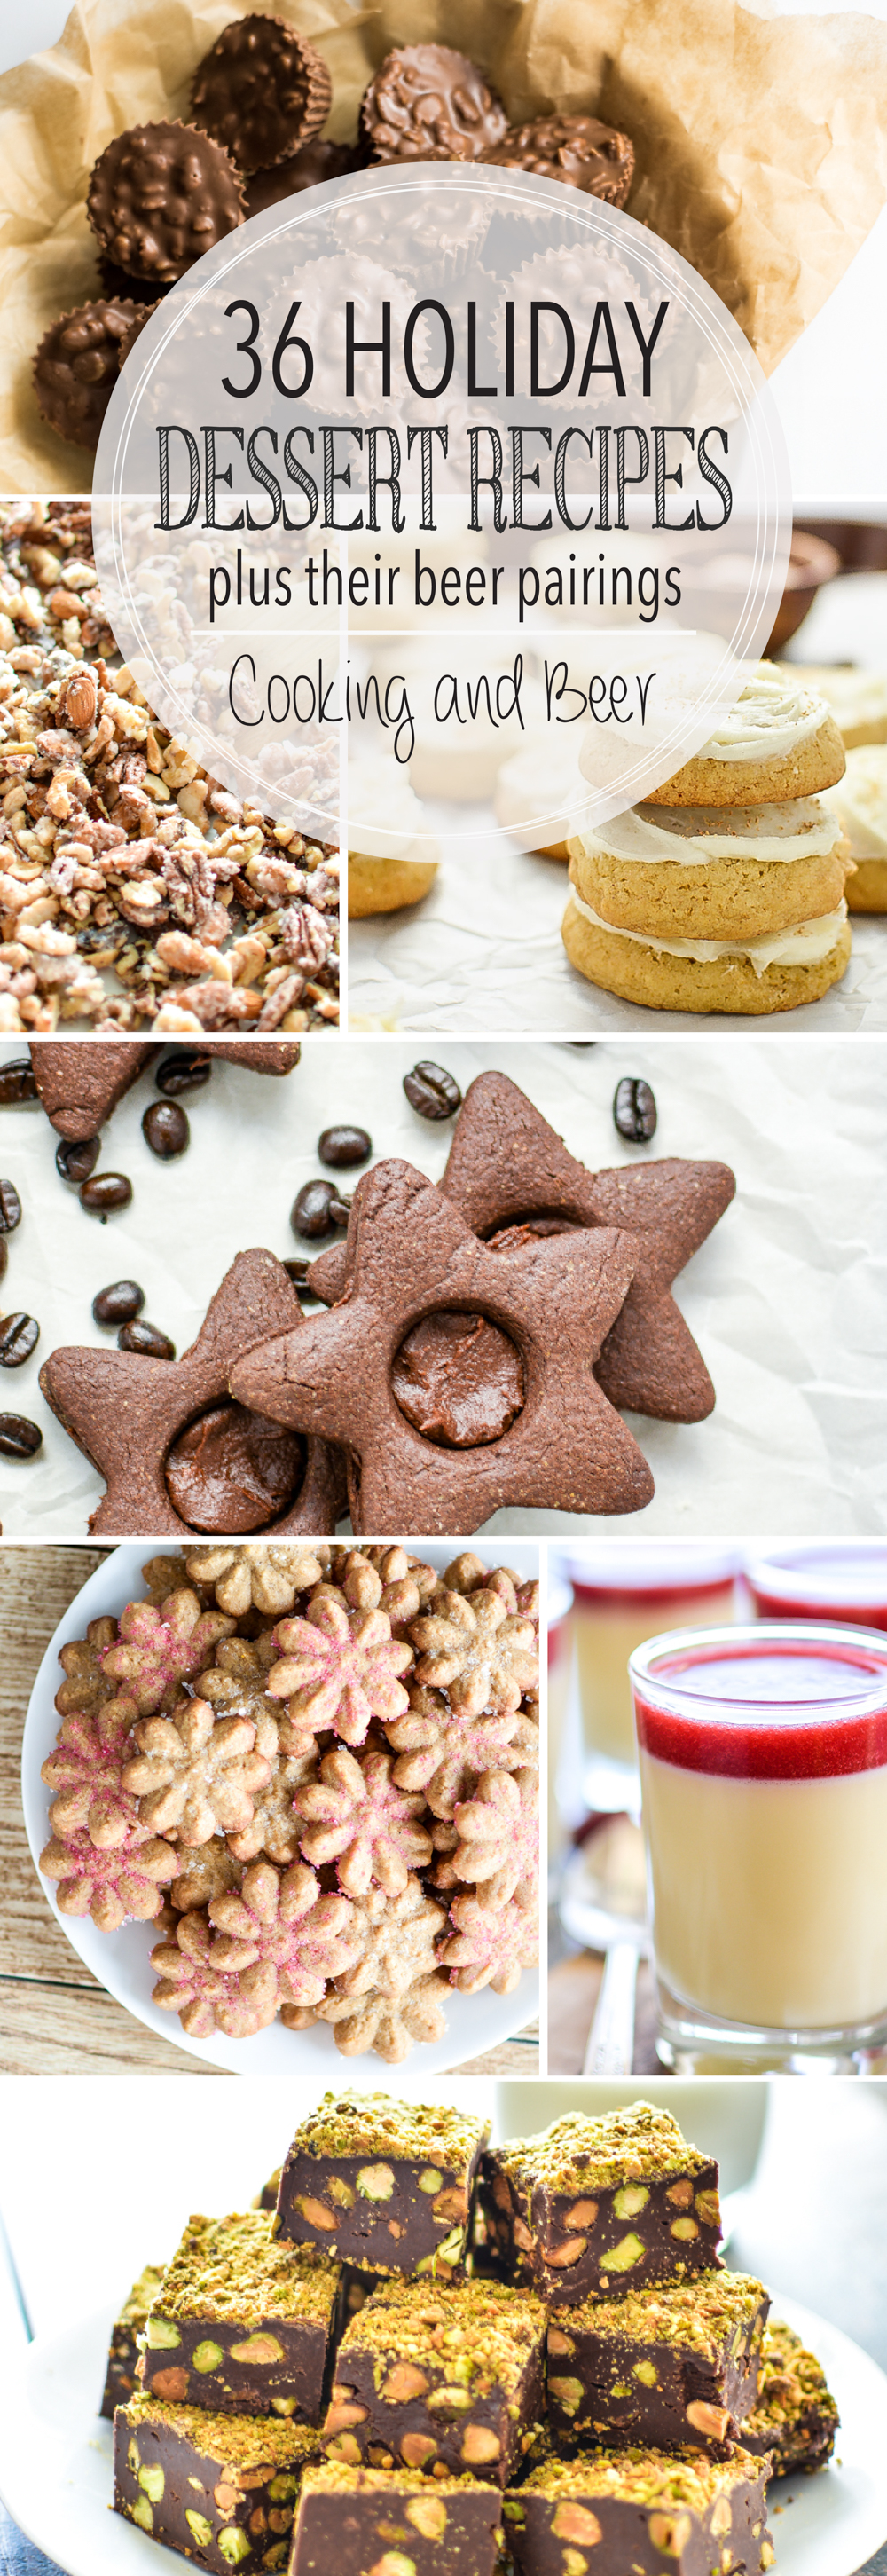 Weekly Family Menu Plan - 5 Desserts for the Holidays Edition | www.cookingandbeer.com